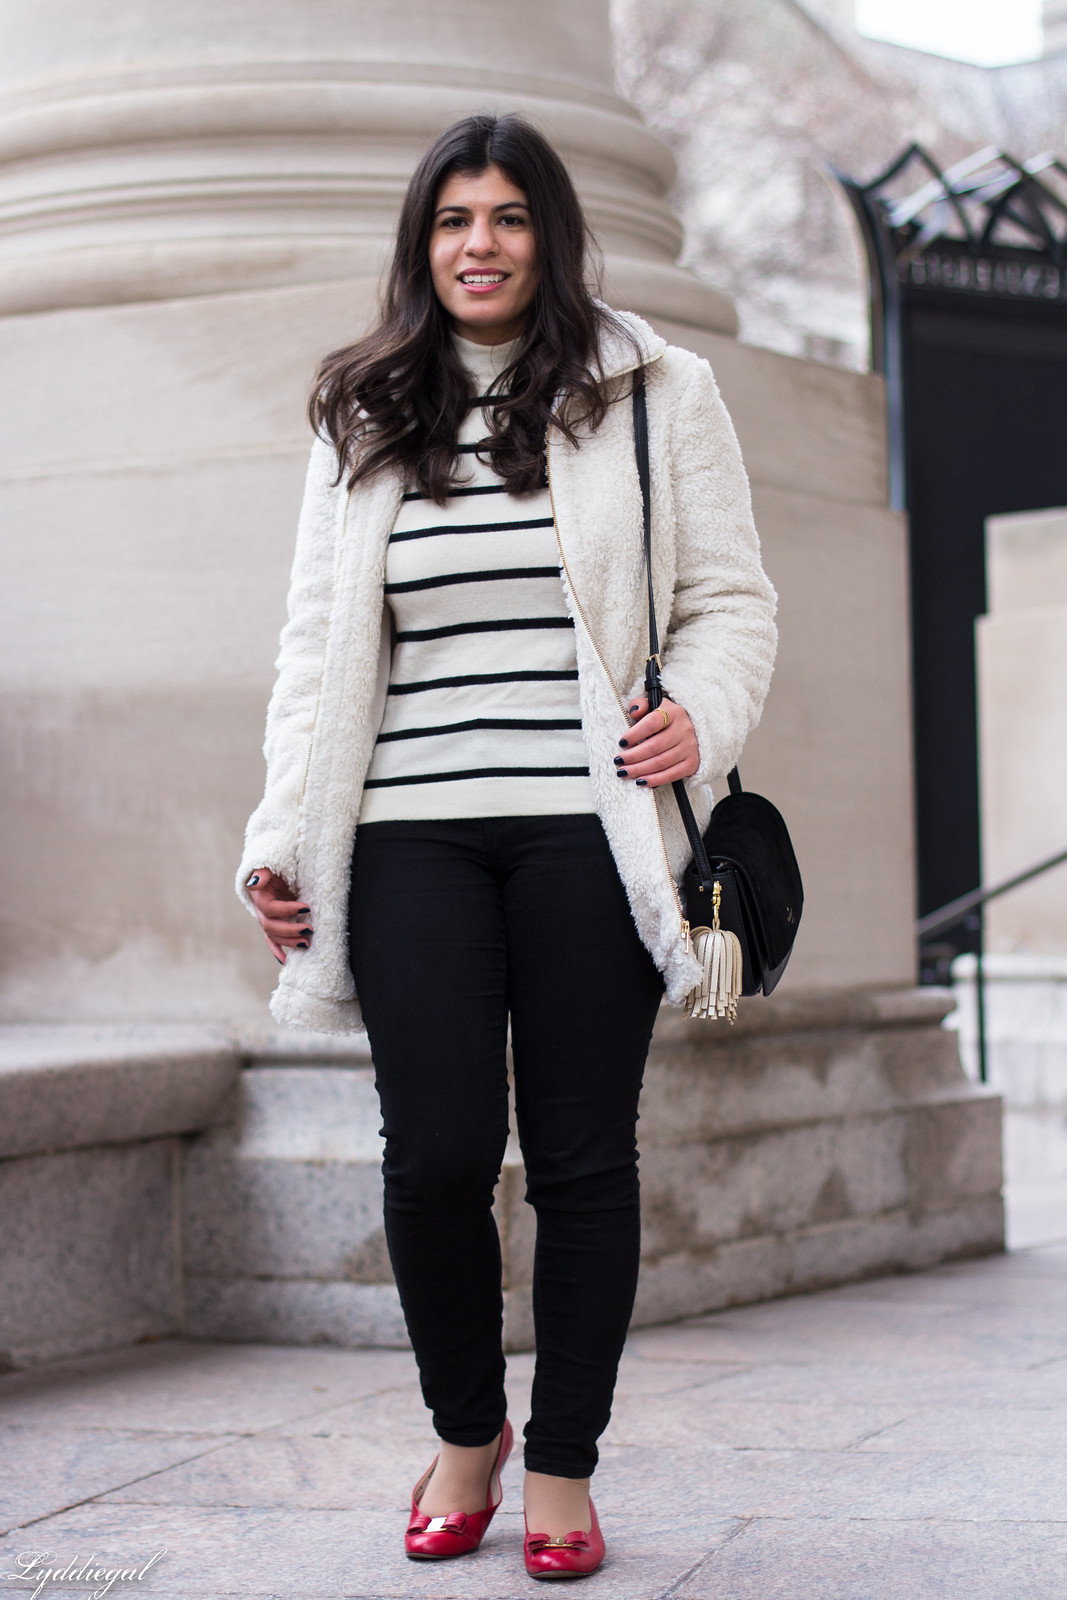 loft teddy bear coat, striped sweater, black jeans, red ferragamo flats-22.jpg